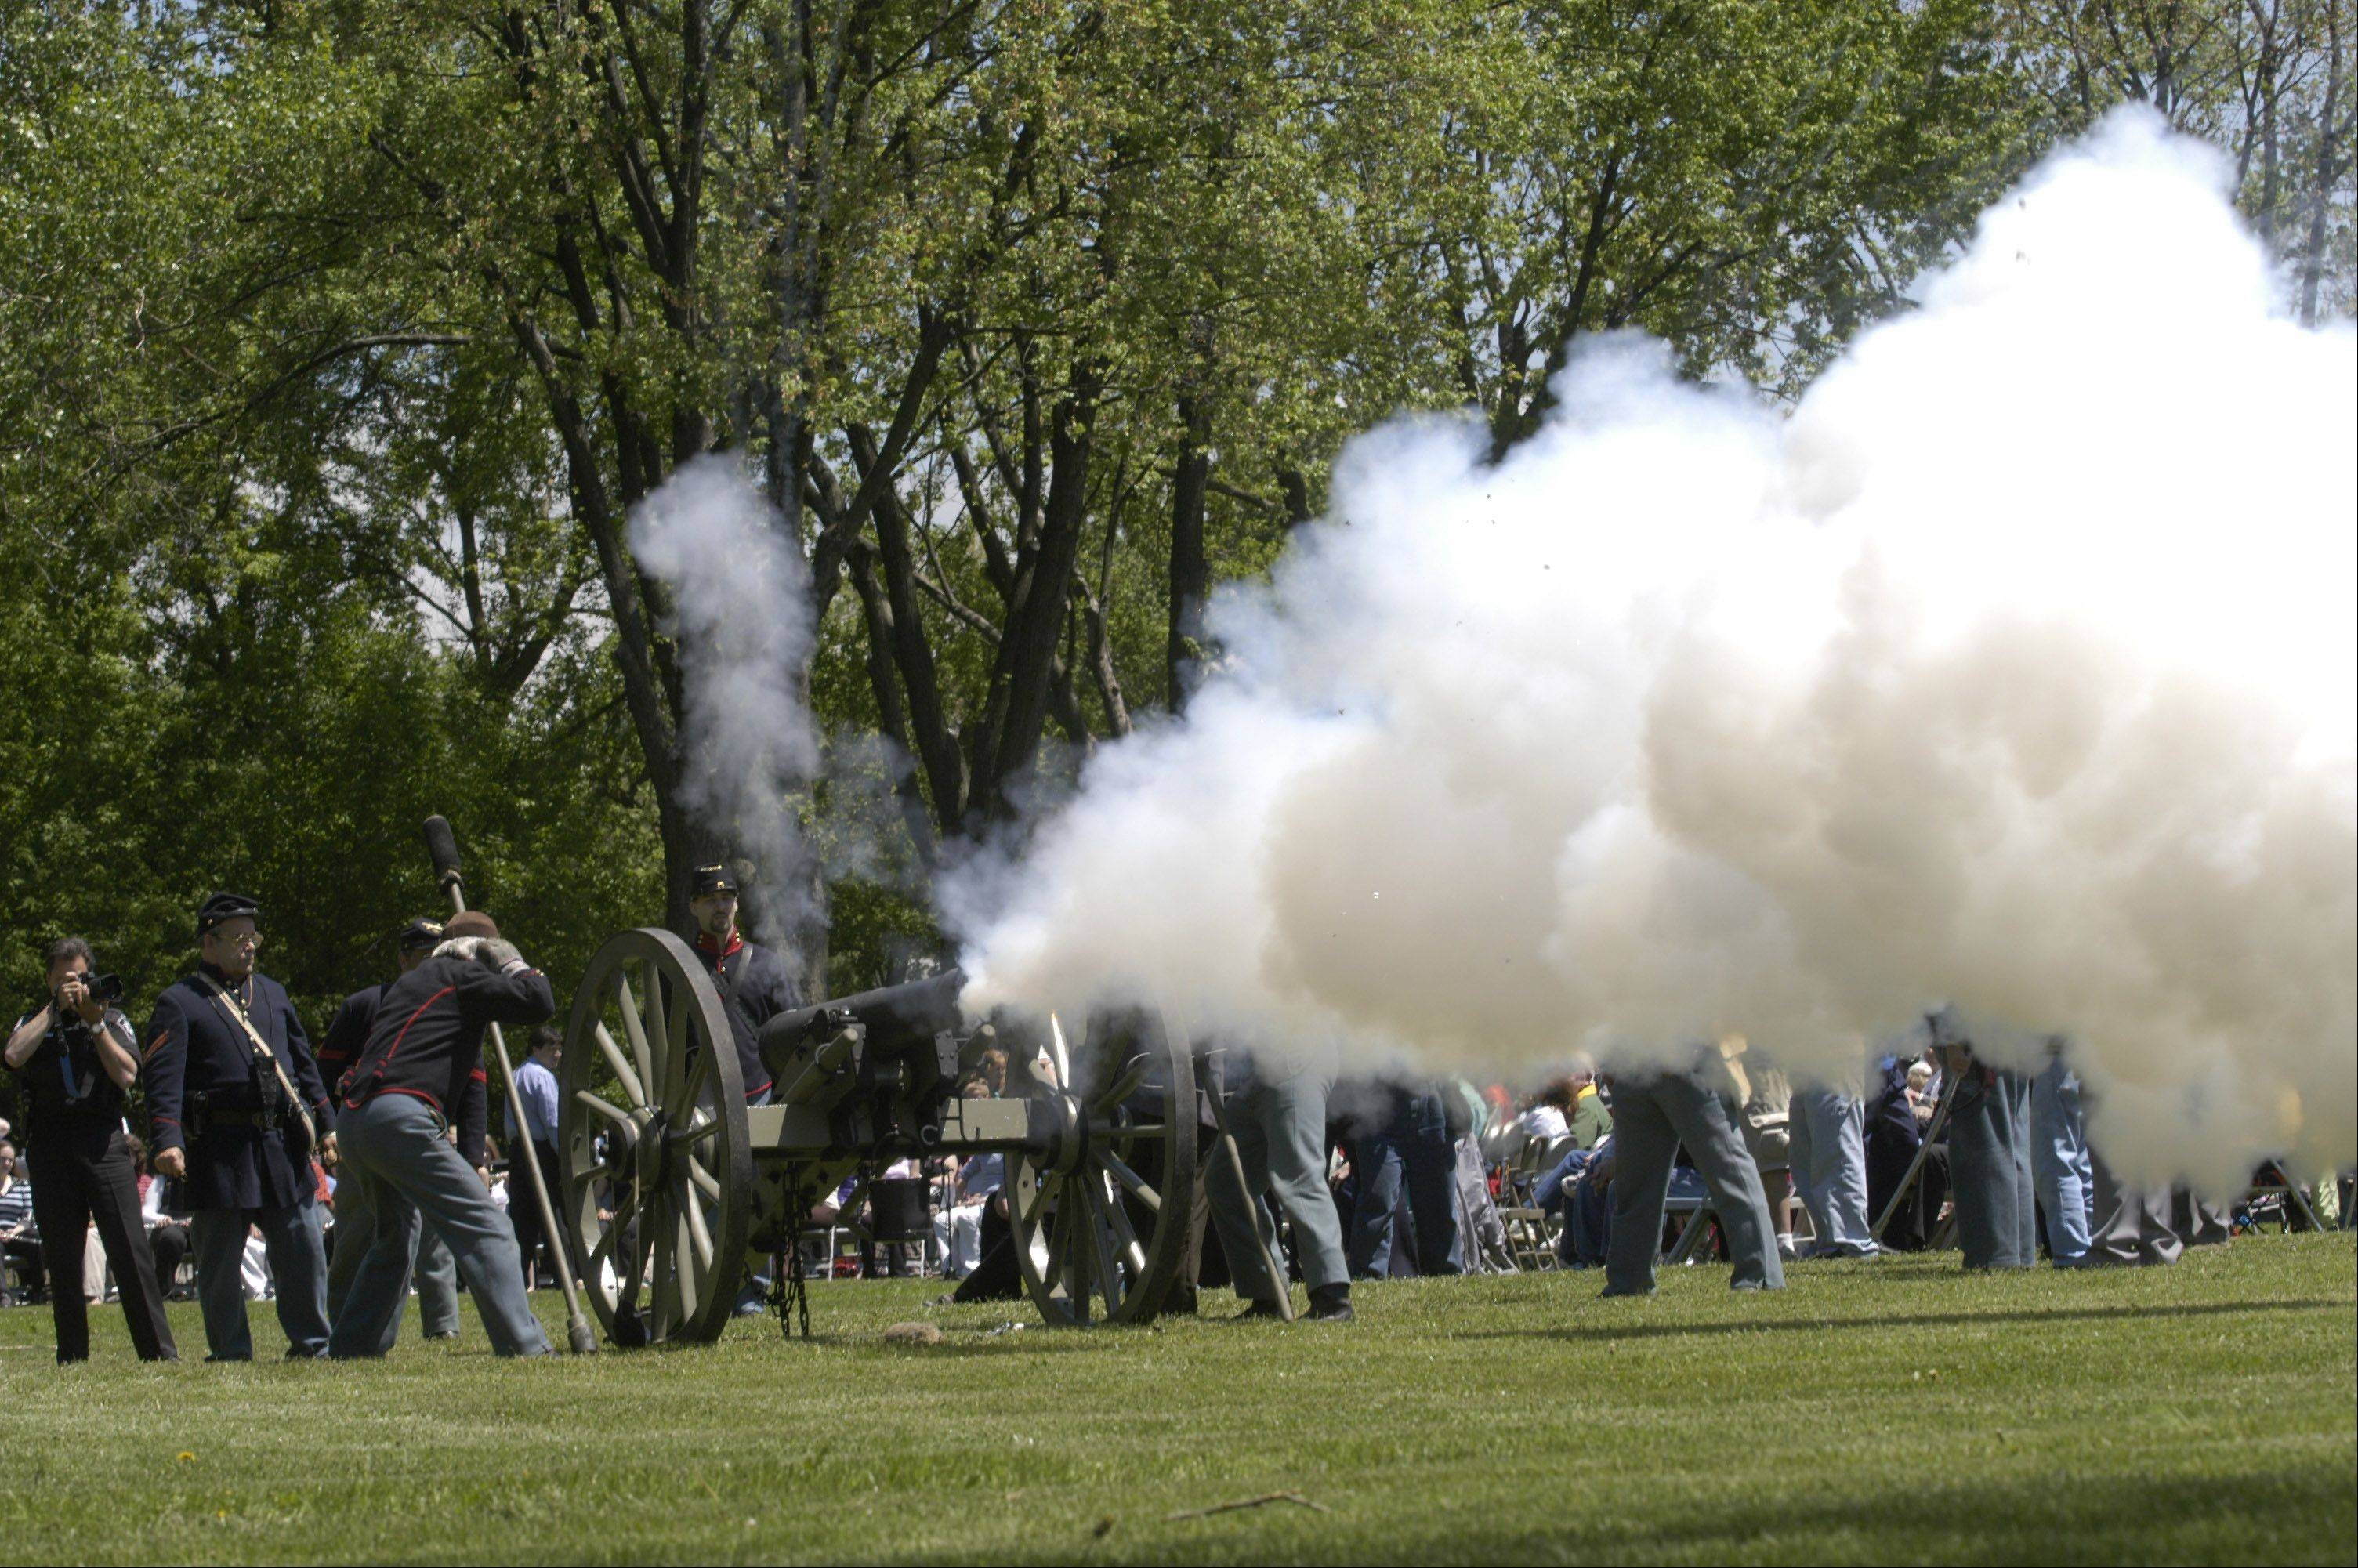 Civil War re-enactors group Taylor's Battery will fire a canon hourly during Depot Days. Between blasts, group members will portray individuals from the Civil War and interact with visitors.